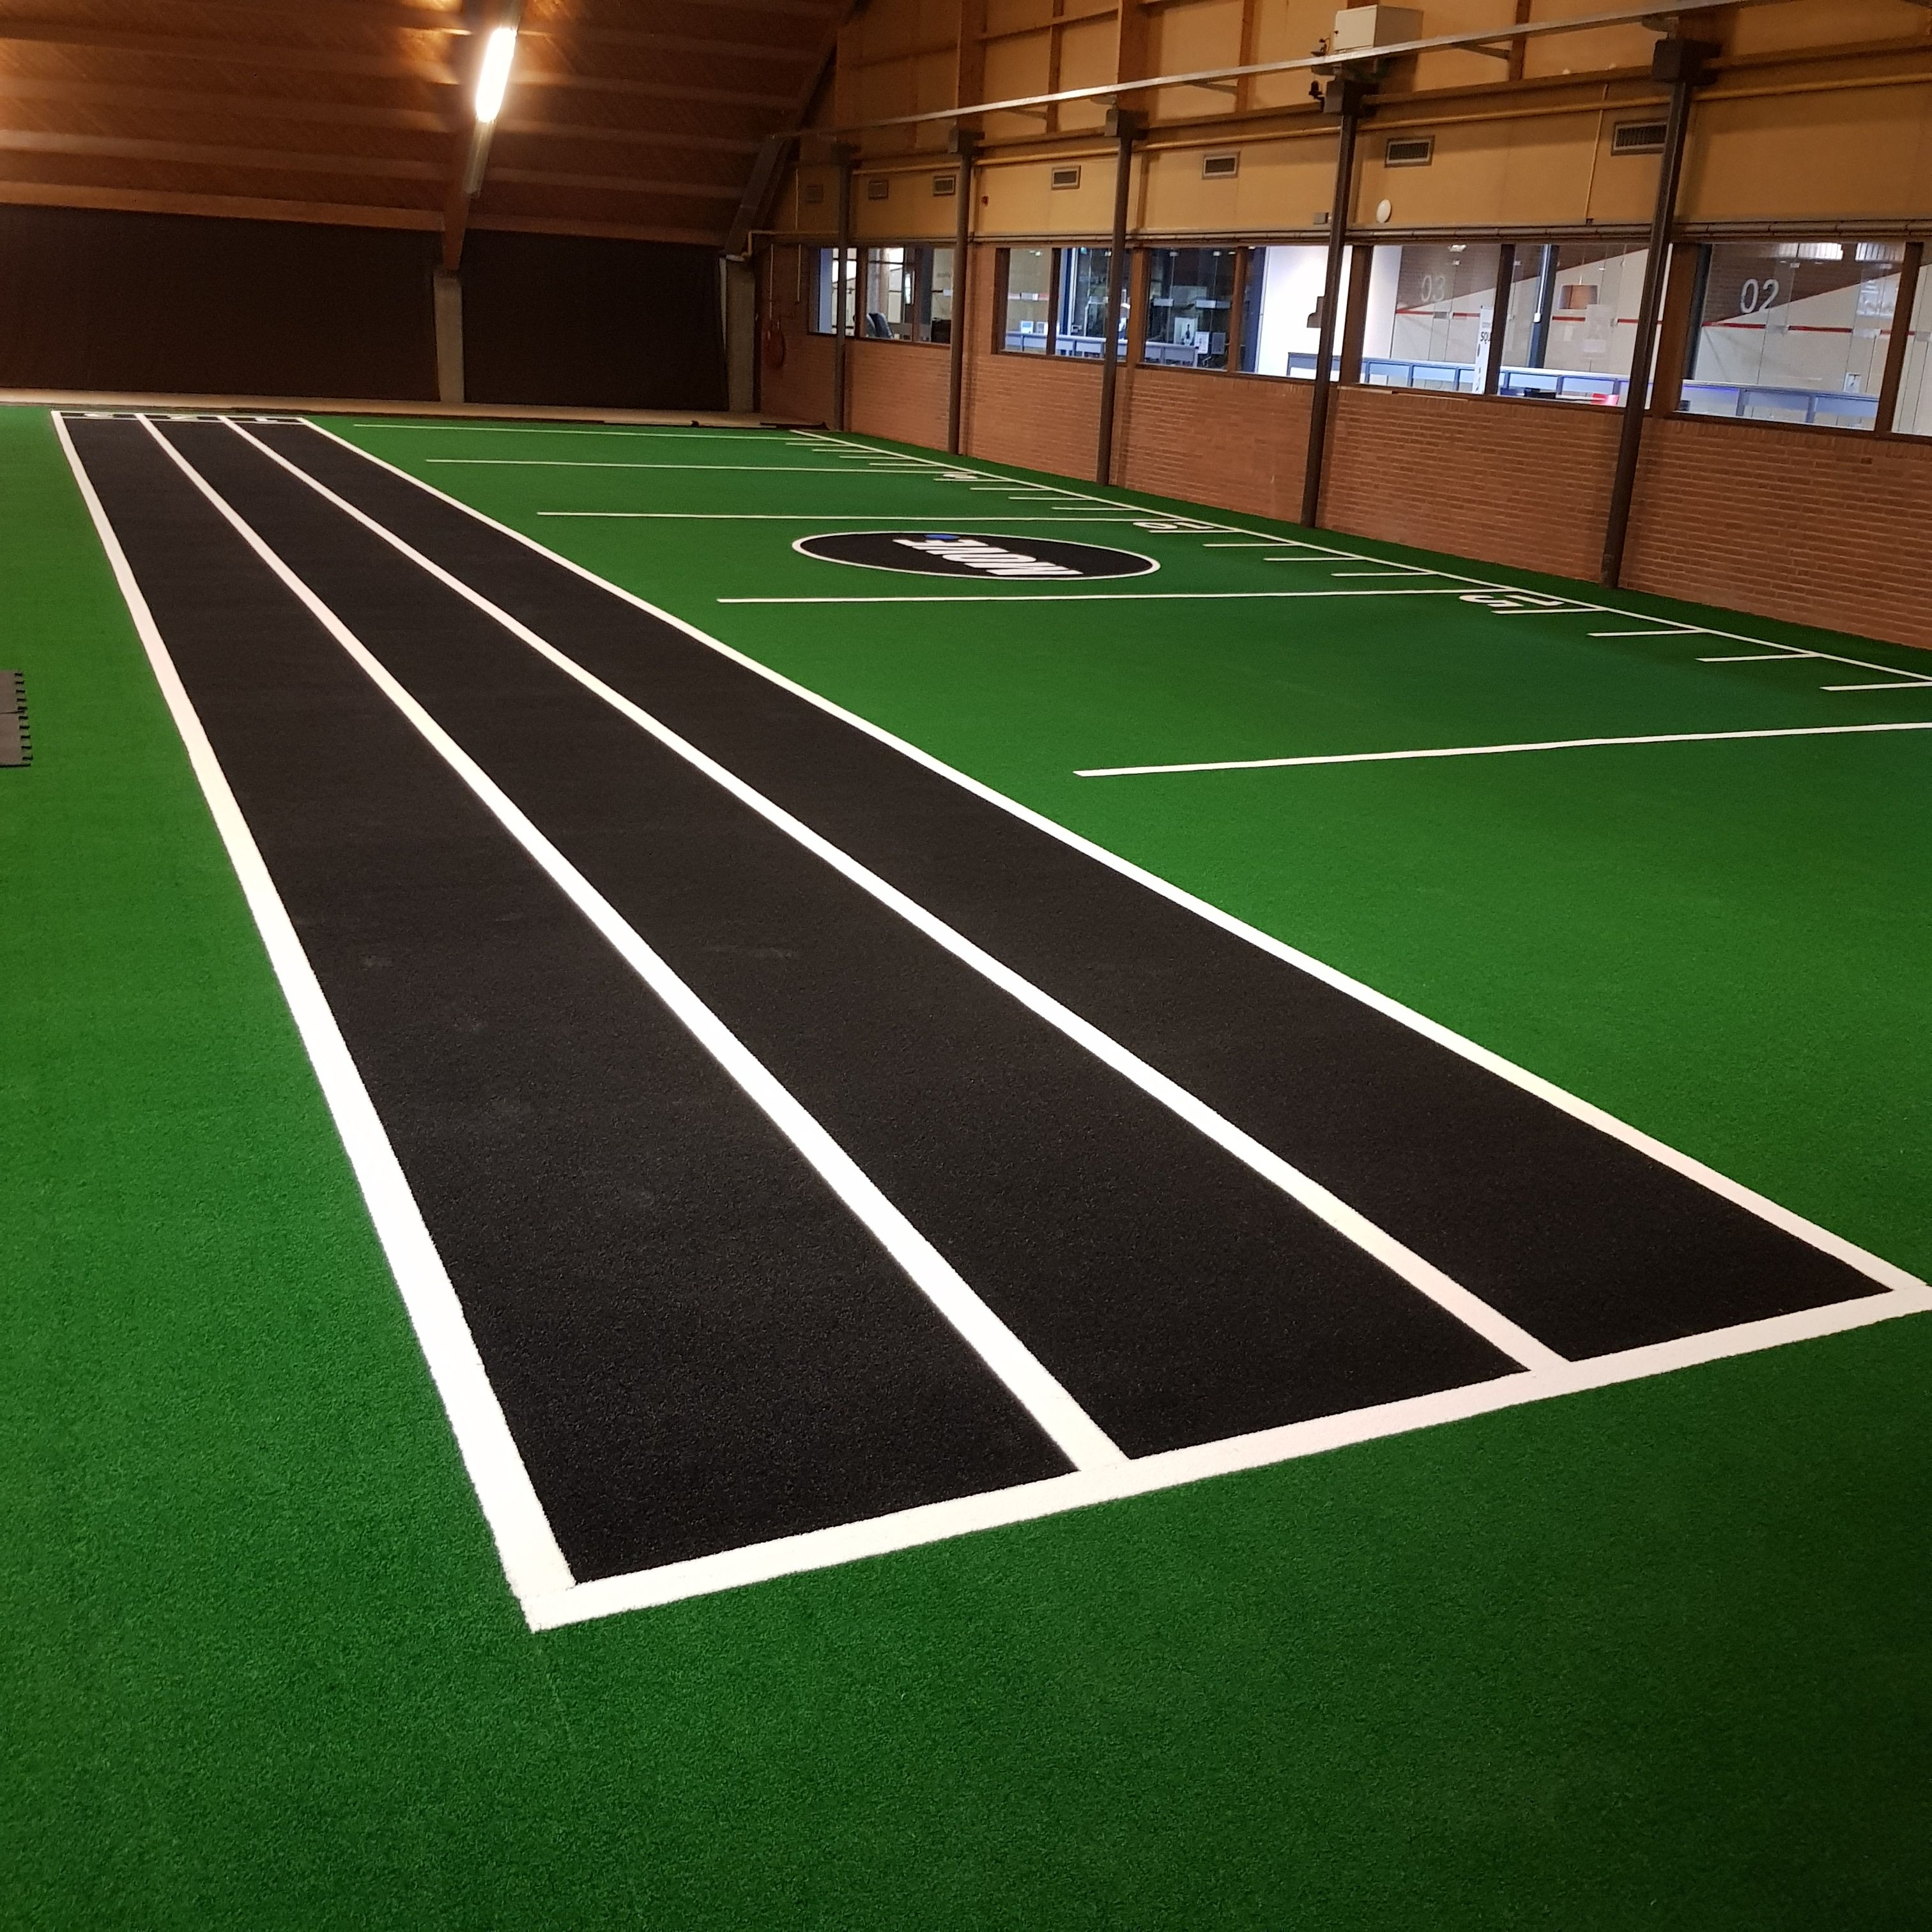 We replaced an indoor tennis court with a green and black